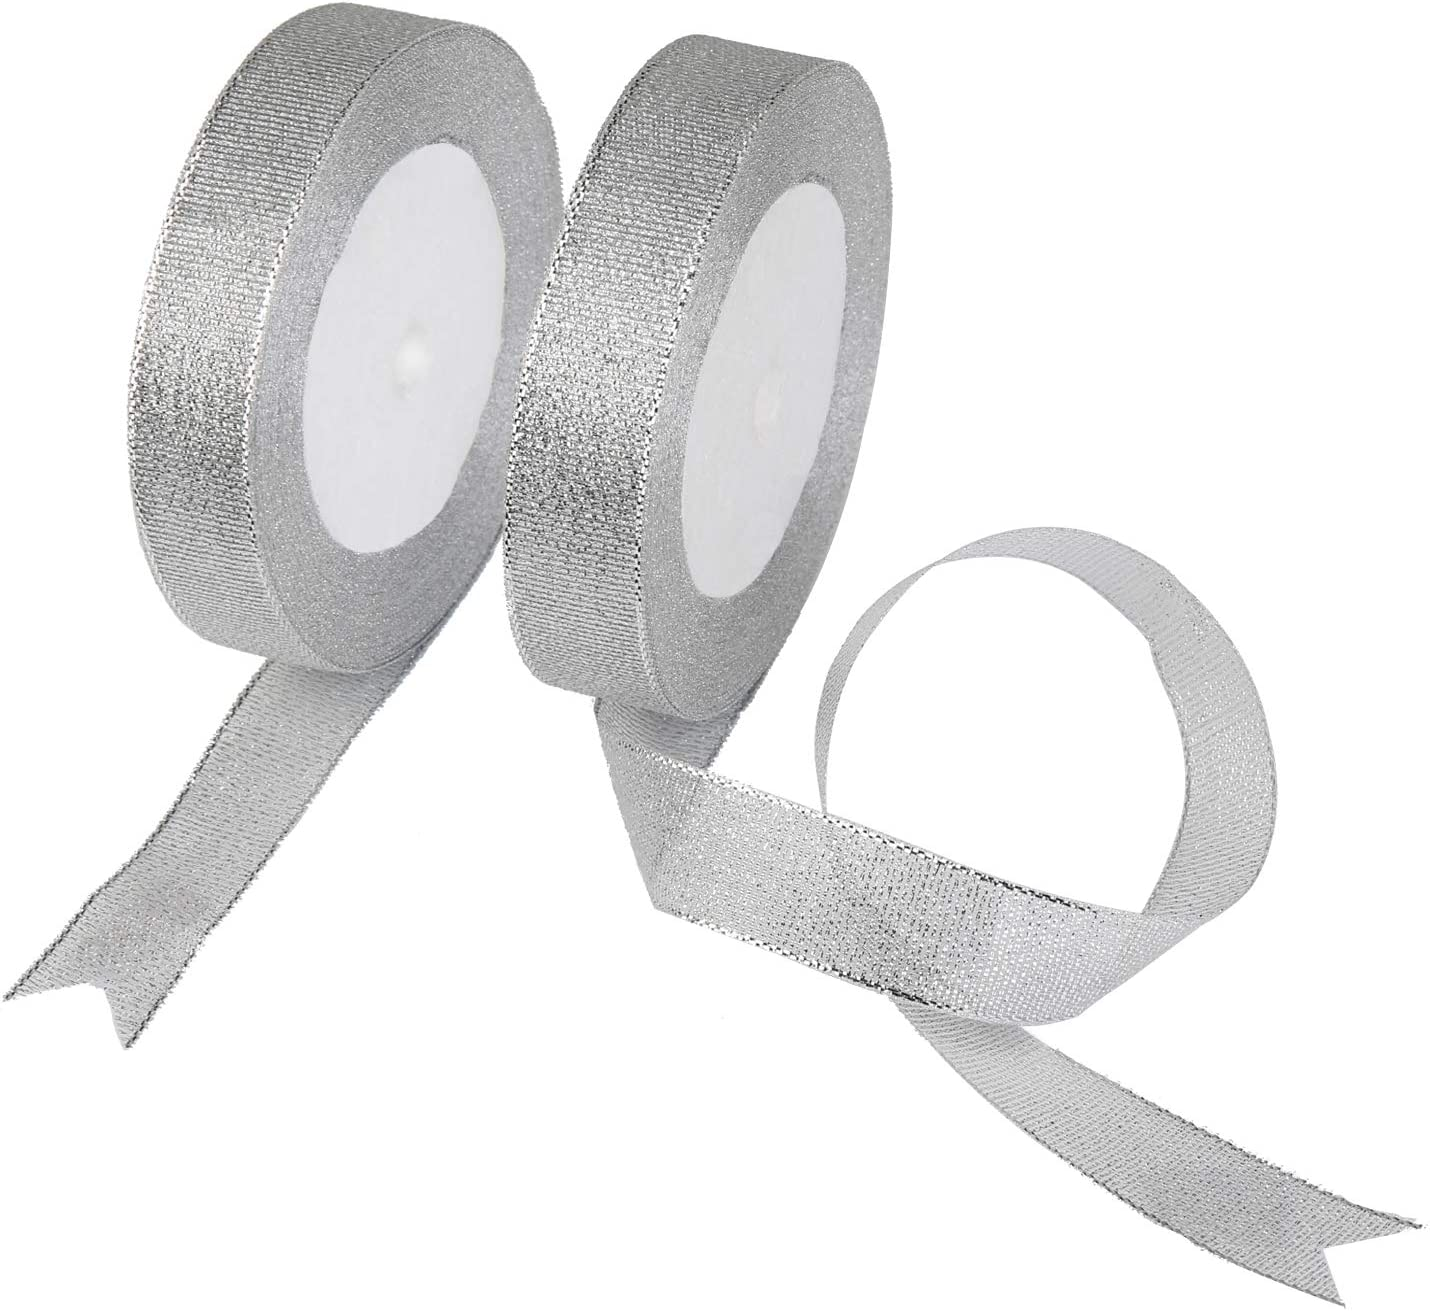 SALE 5 x Rolls Sparkly Finish Silver Christmas Parcel Ribbon Good Quality